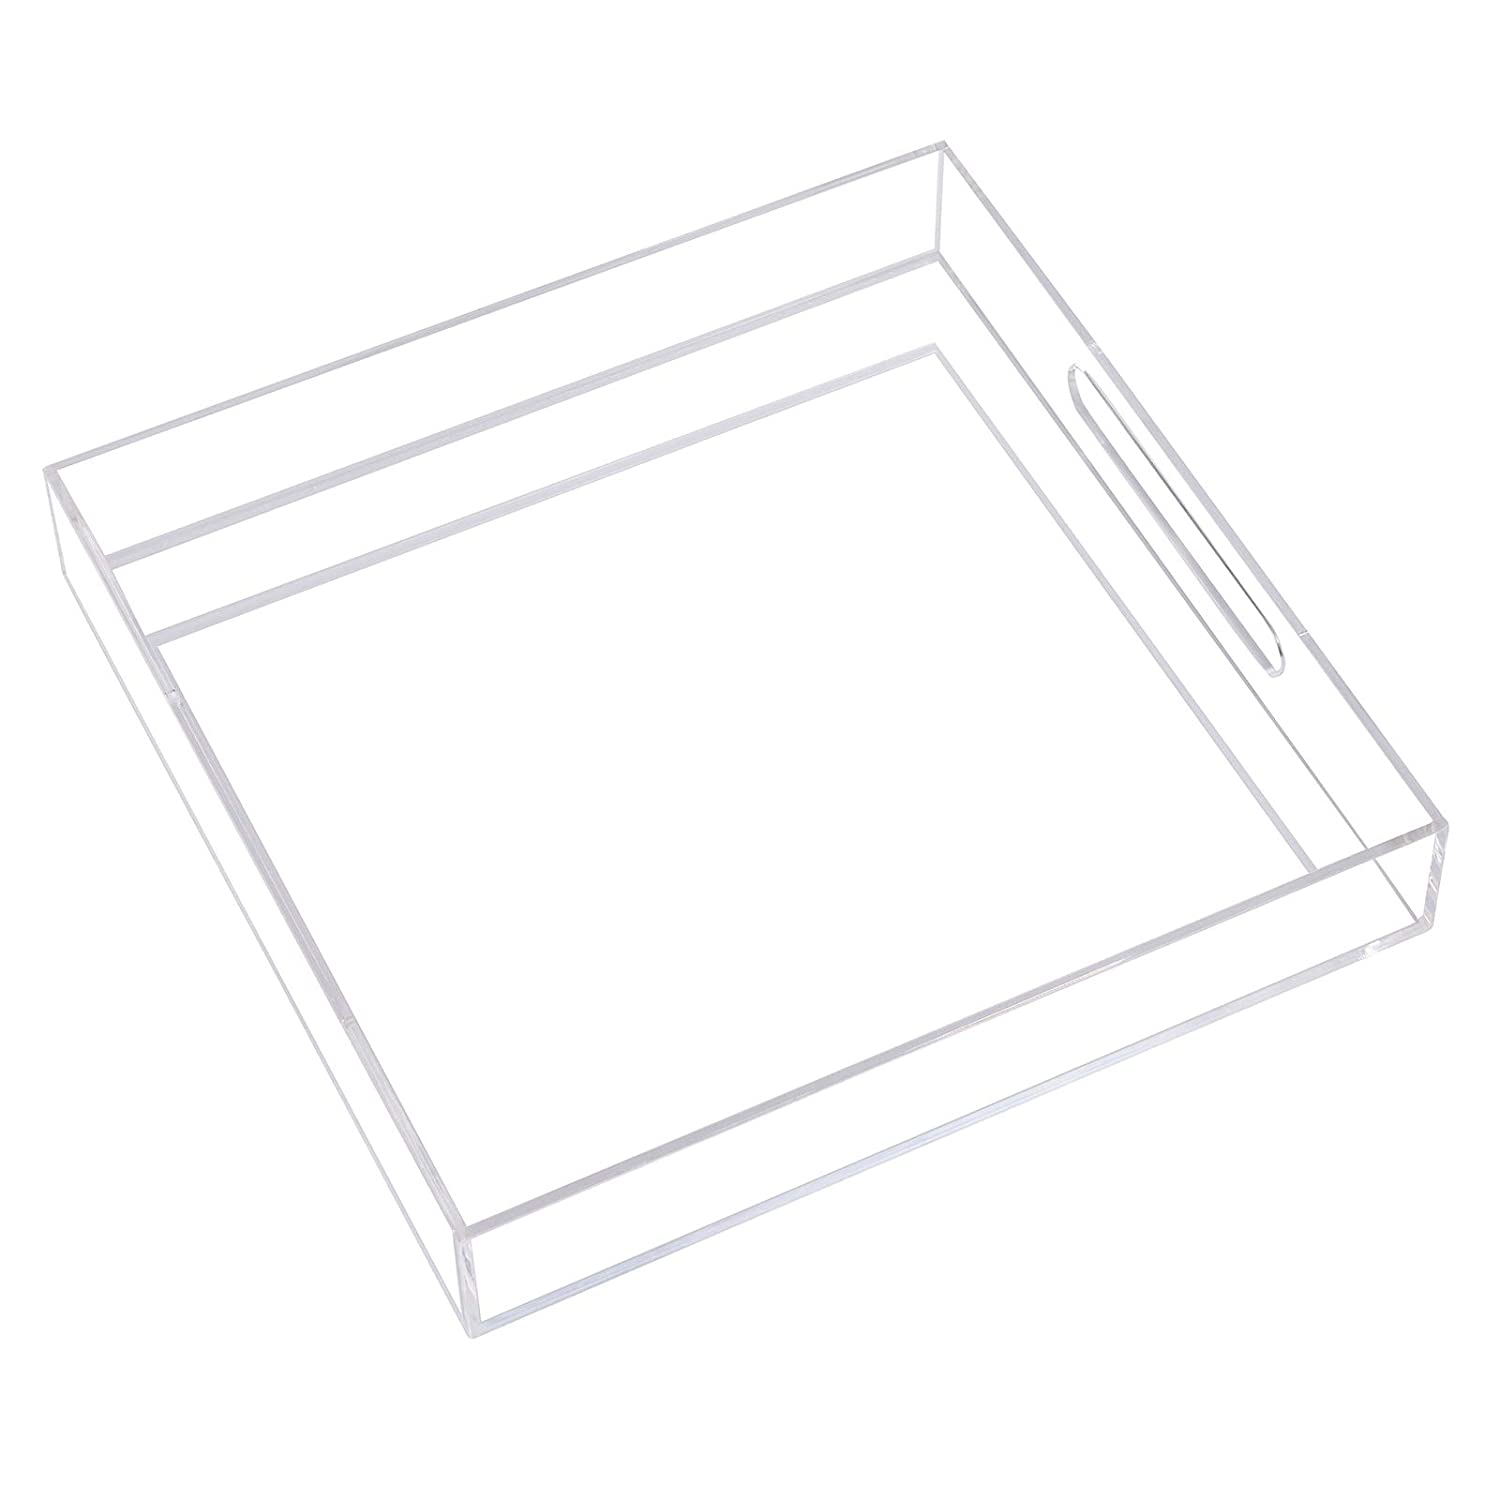 Clear Acrylic Tray Serving Tray with Handles for Coffee,Breakfast,Tea,Food,Decorative Organiser (12